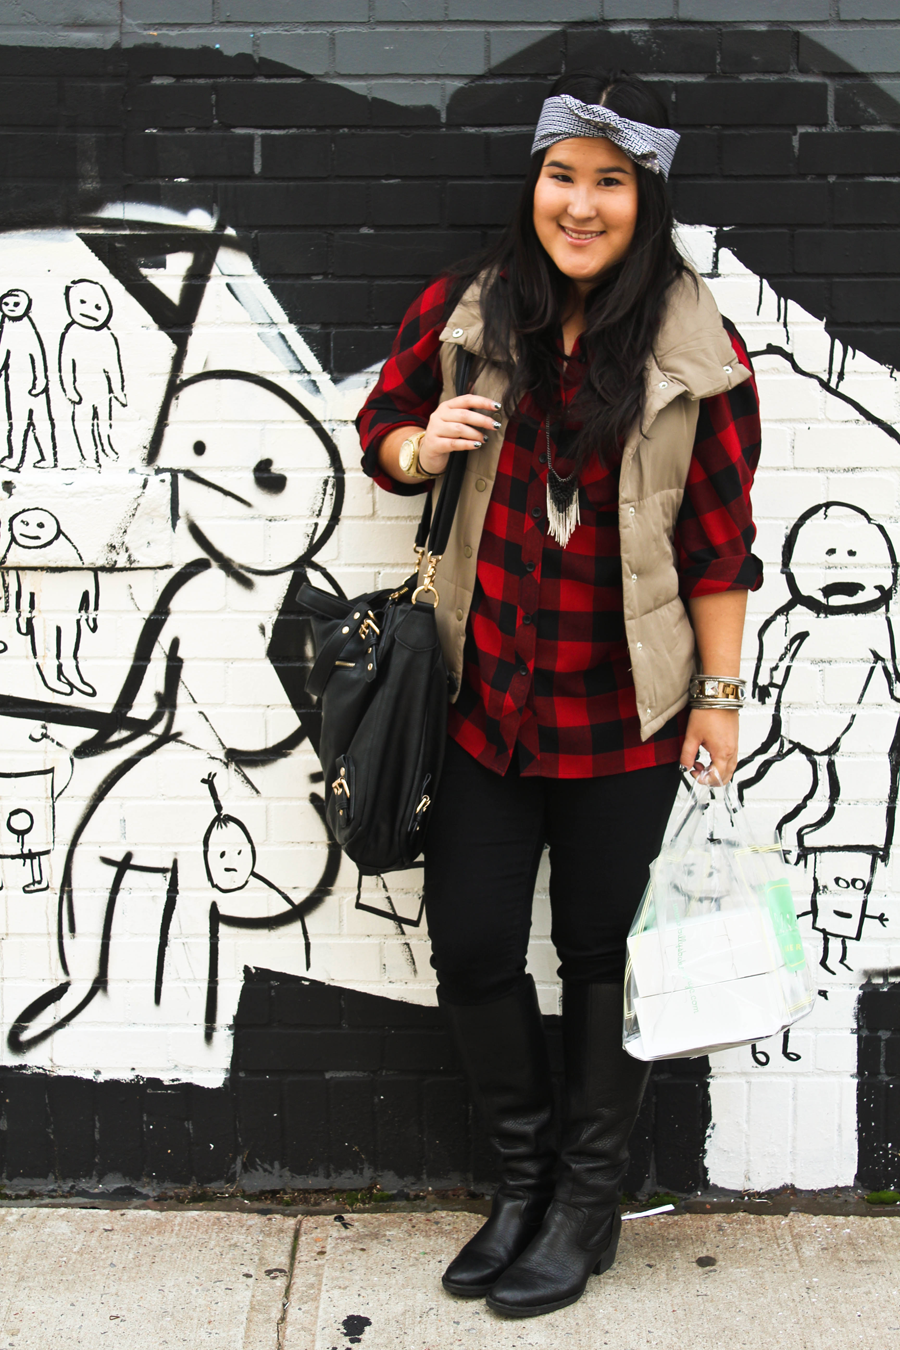 Fall Outfit Inspiration | Plaid Tunic, Quilted Vest, Boots and a Headband |